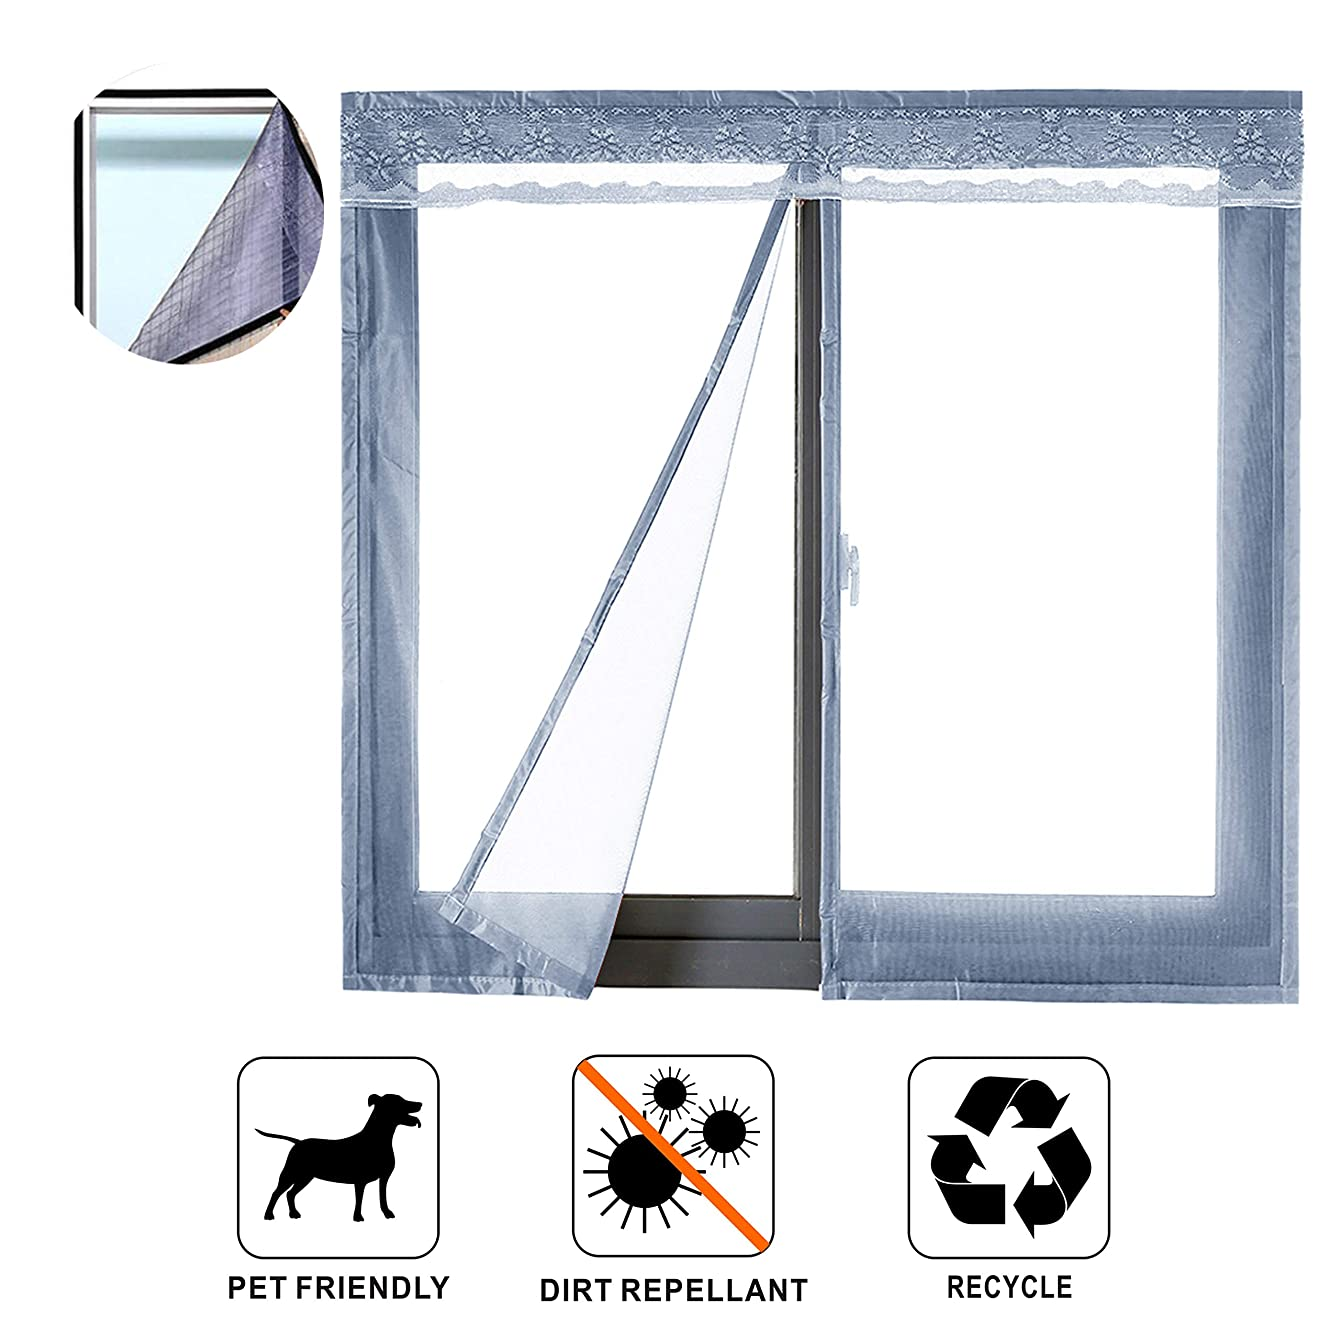 Liveinu Reinforced Magnetic Window Screen Mesh Anti Fly Mosquito Insect Curtain with Magnets for Window and Door Full Frame,No Drilling,Hook & Loop Fastening Tape Install 27 x 39 Inch Grey